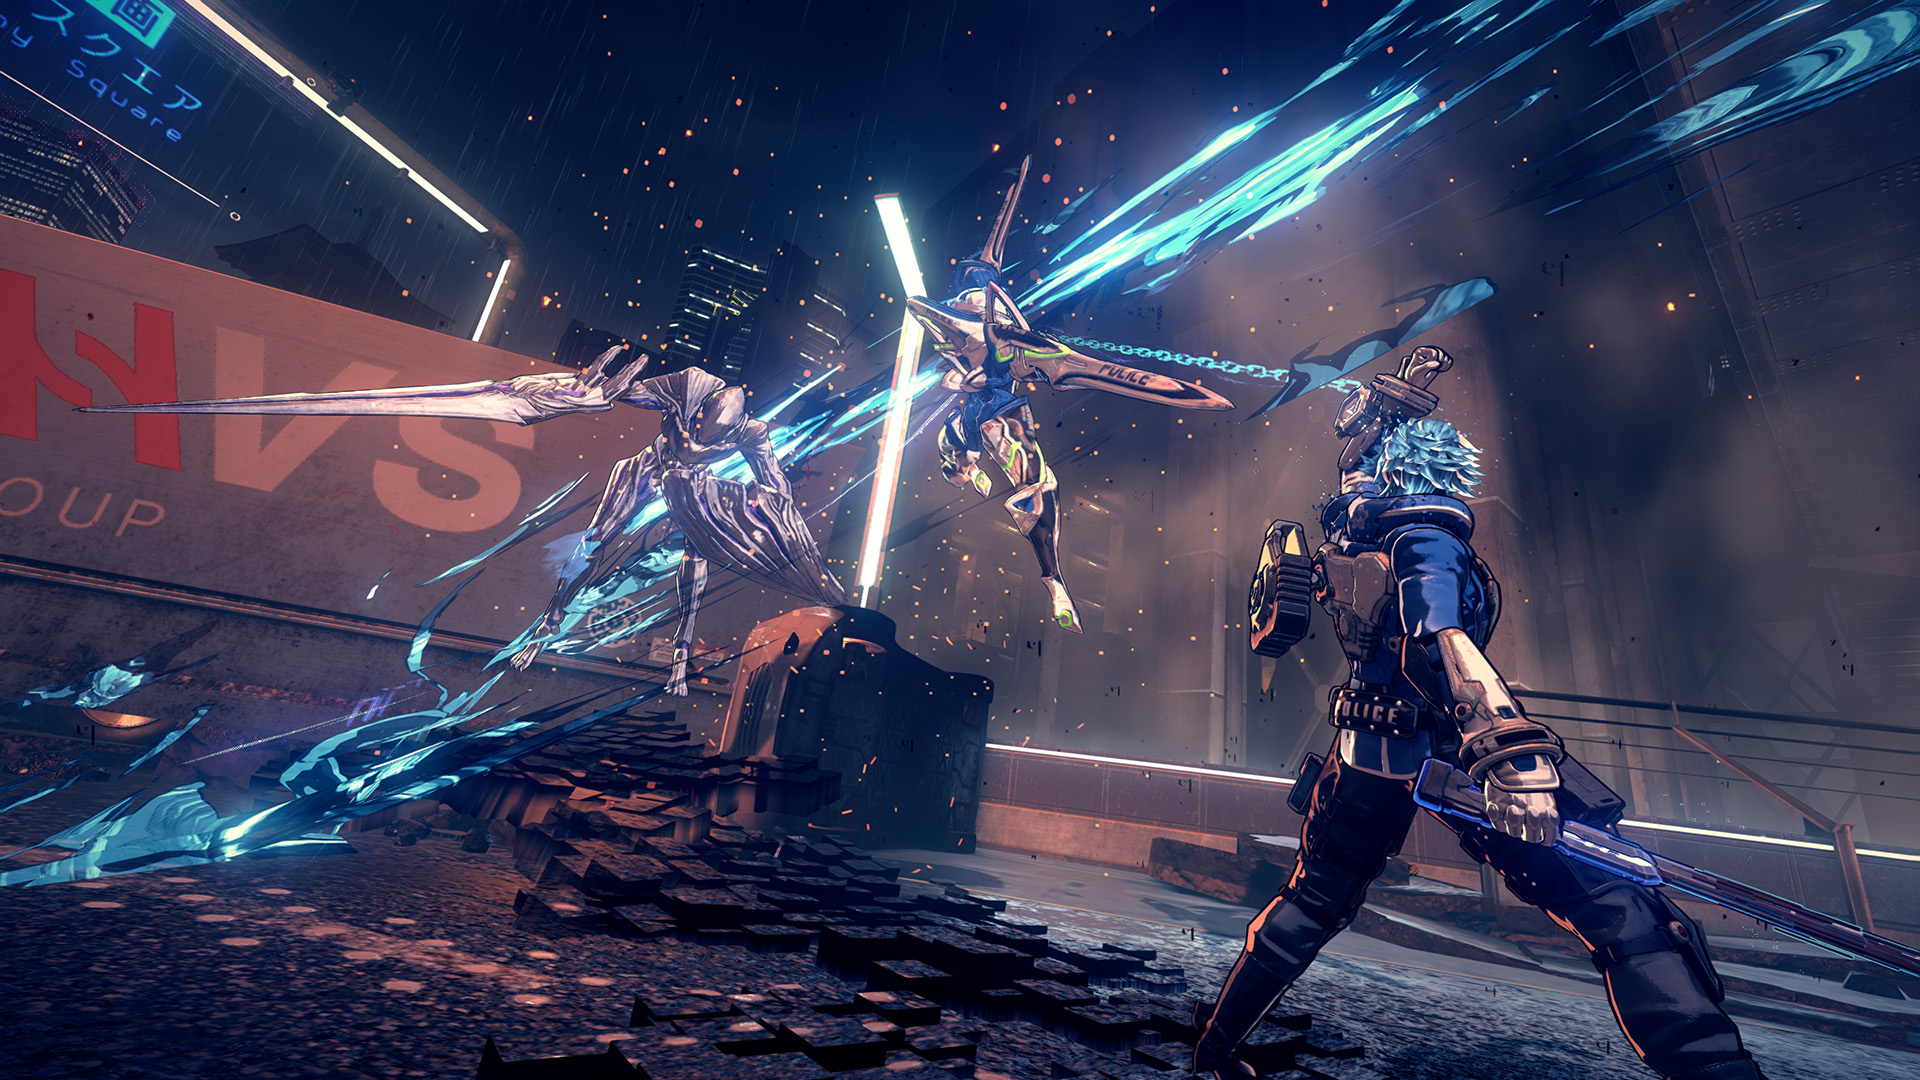 Hd Jupiter Wallpaper Nintendo And Platinum Games Announce Astral Chain For